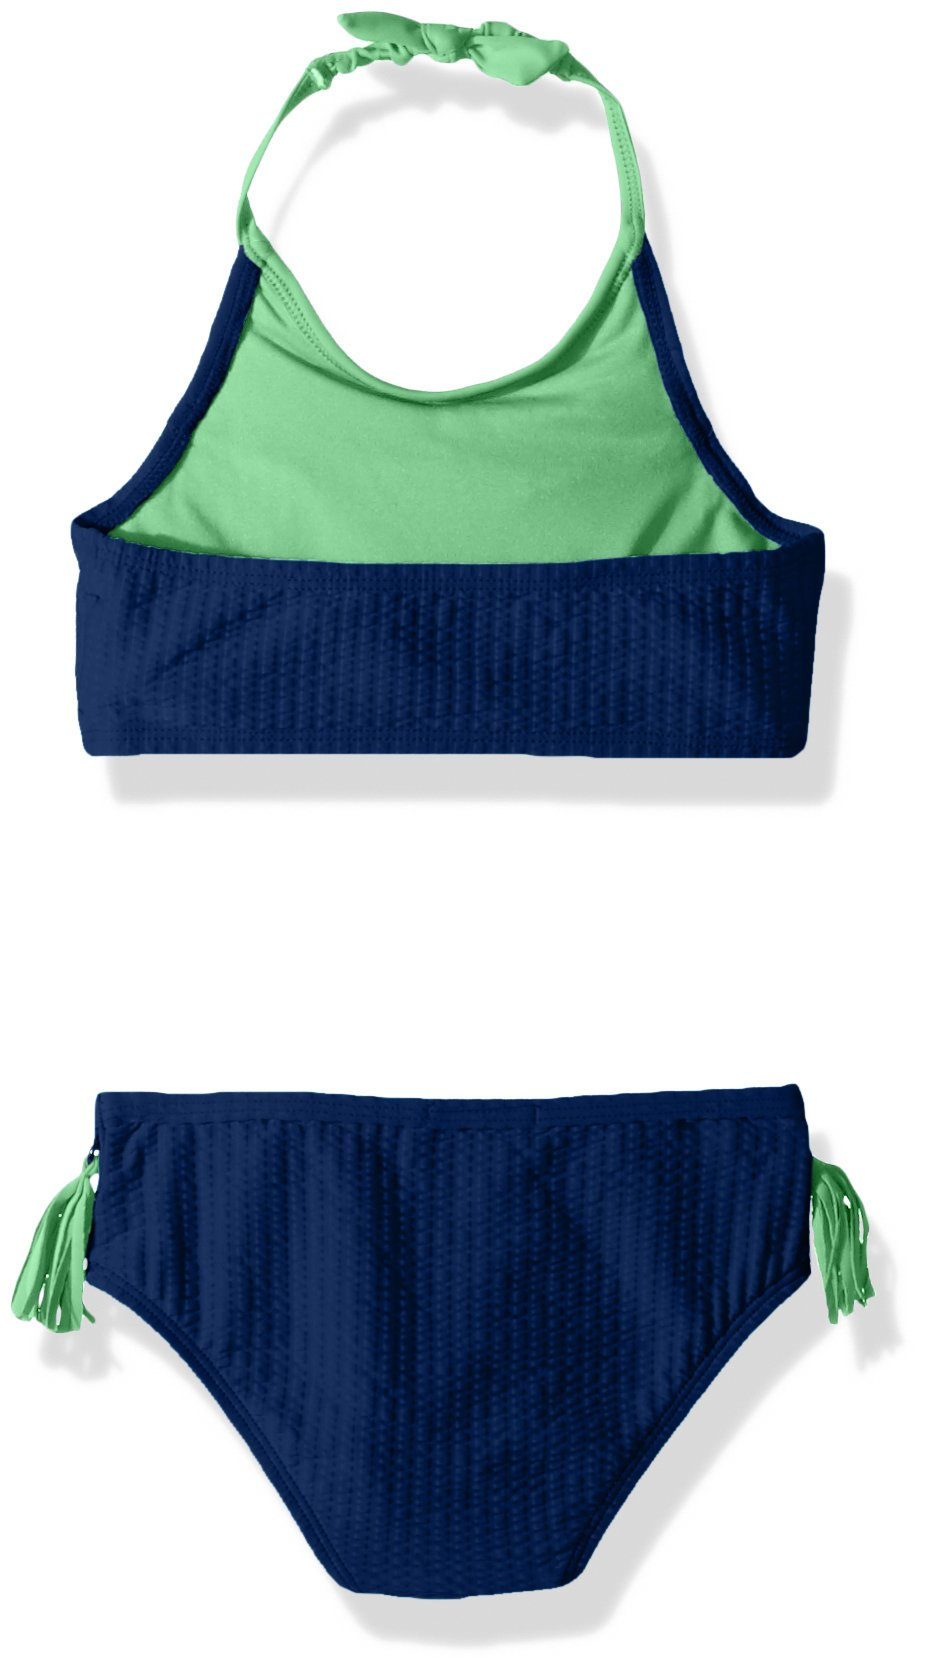 Jessica Simpson Little Girls' 2-Piece Bikini Swimsuit Set, Ruffle Front Navy, 6 by Jessica Simpson (Image #2)